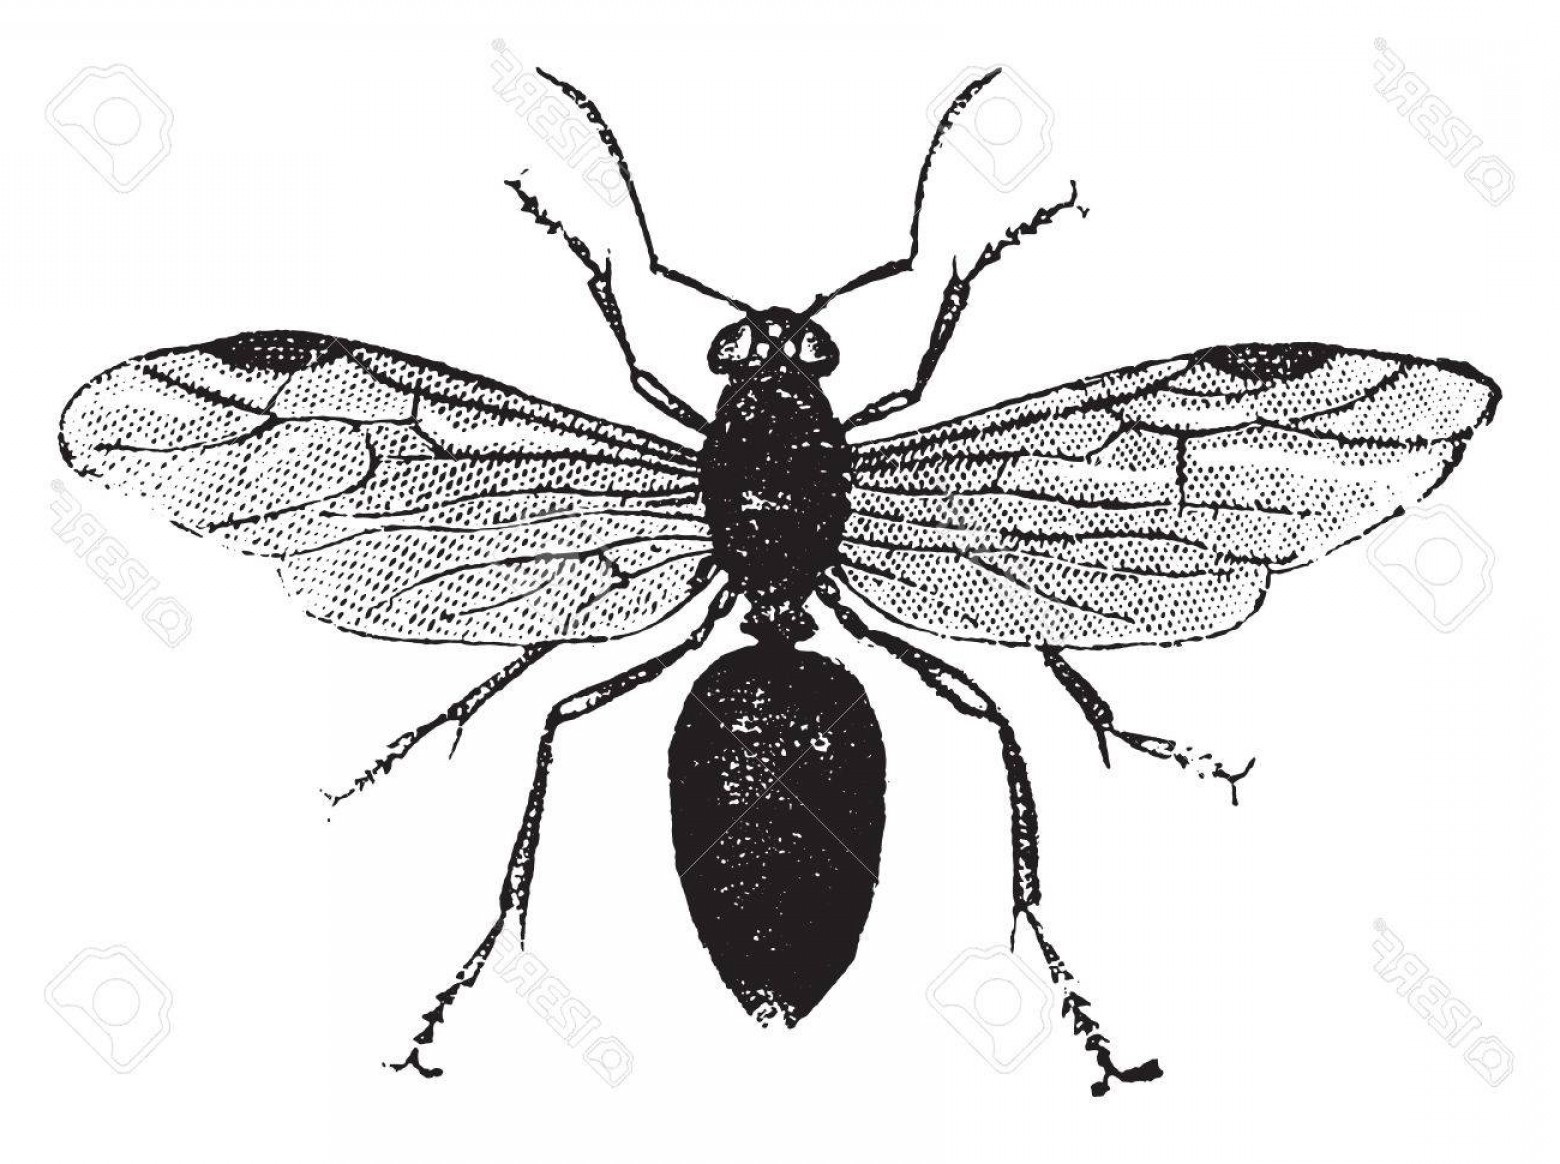 Termites With Wings Vector: Photostock Vector Winged Ant Vintage Engraved Illustration Natural History Of Animals